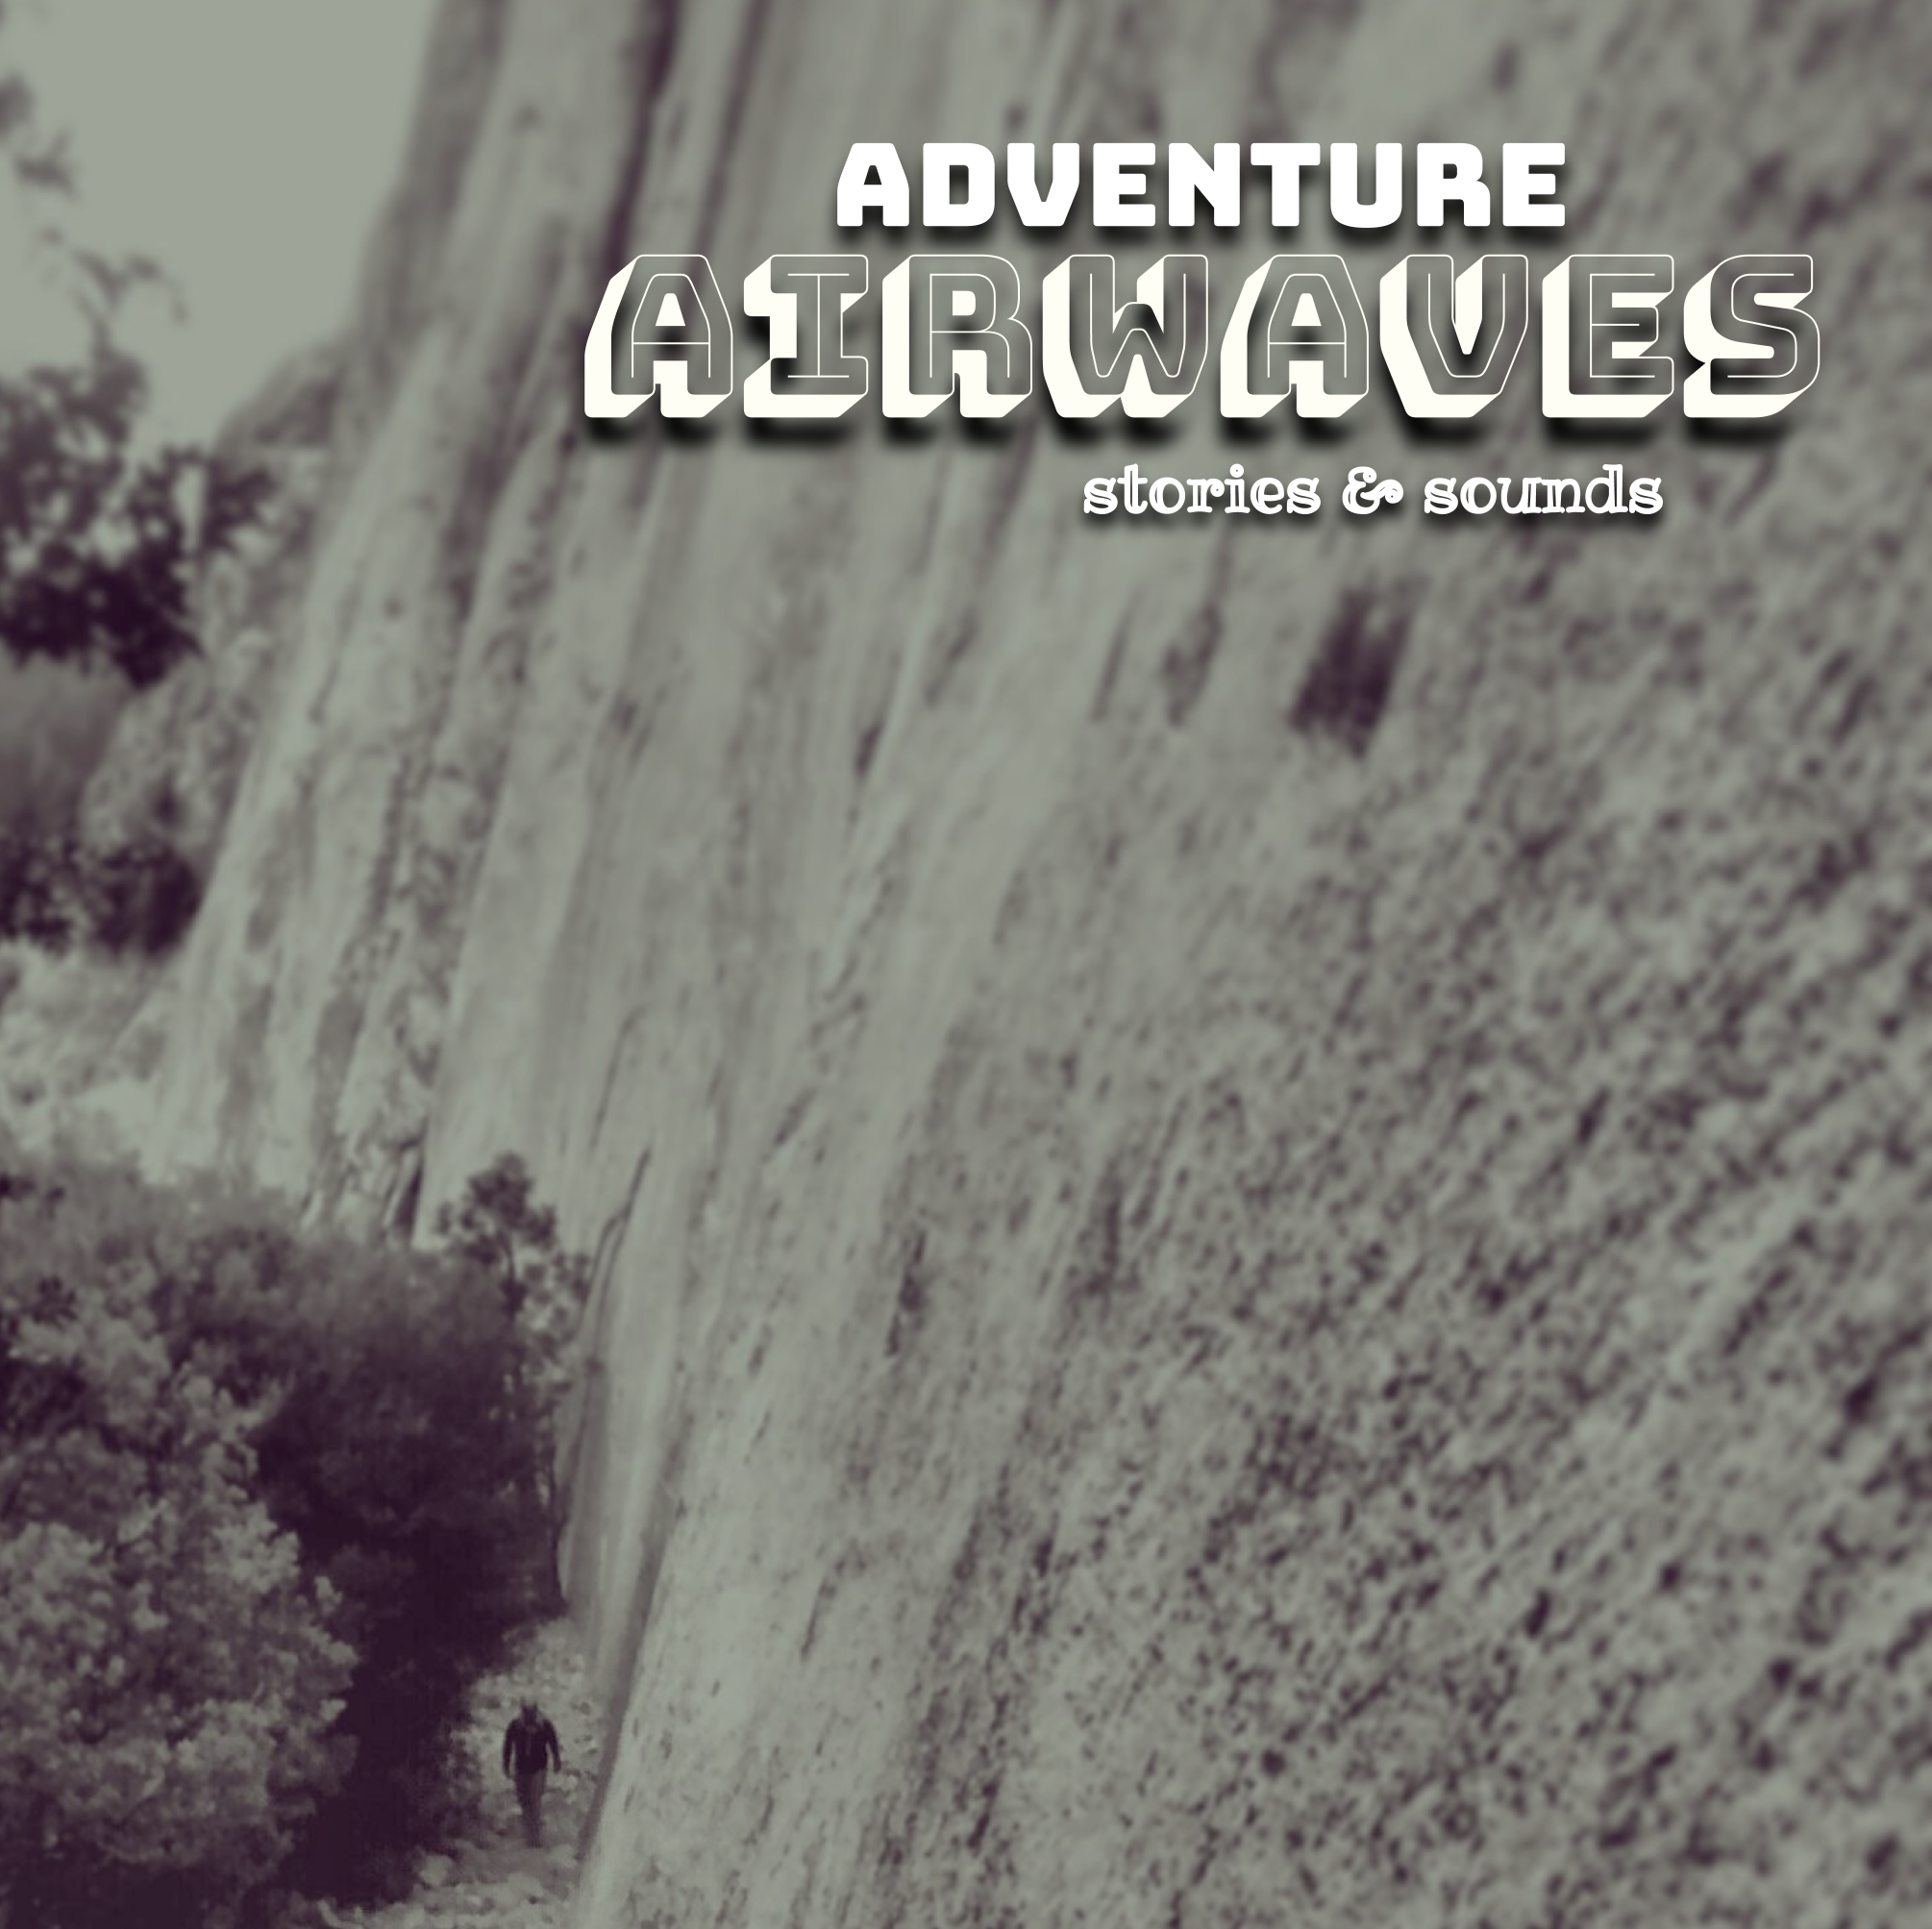 Adventure Airwaves Podcast Trailer - An Outdoor Storytelling and Personal Essay Podcast